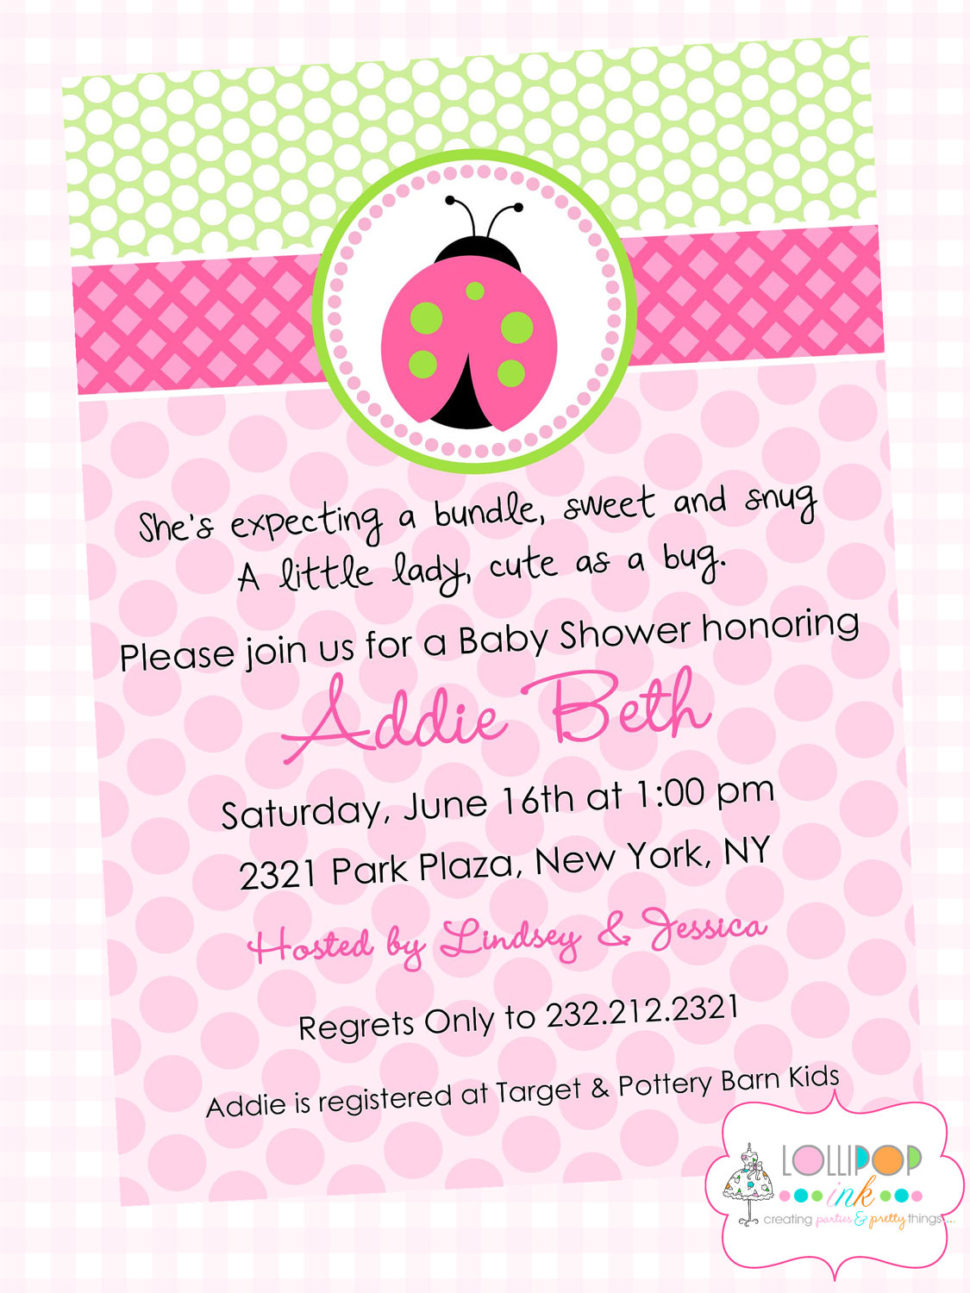 Medium Size of Baby Shower:delightful Baby Shower Invitation Wording Picture Designs Baby Shower Invitation Wording Baby Shower Invitations Wording To Make Adorable Baby Shower Invitation Design Online 41020165